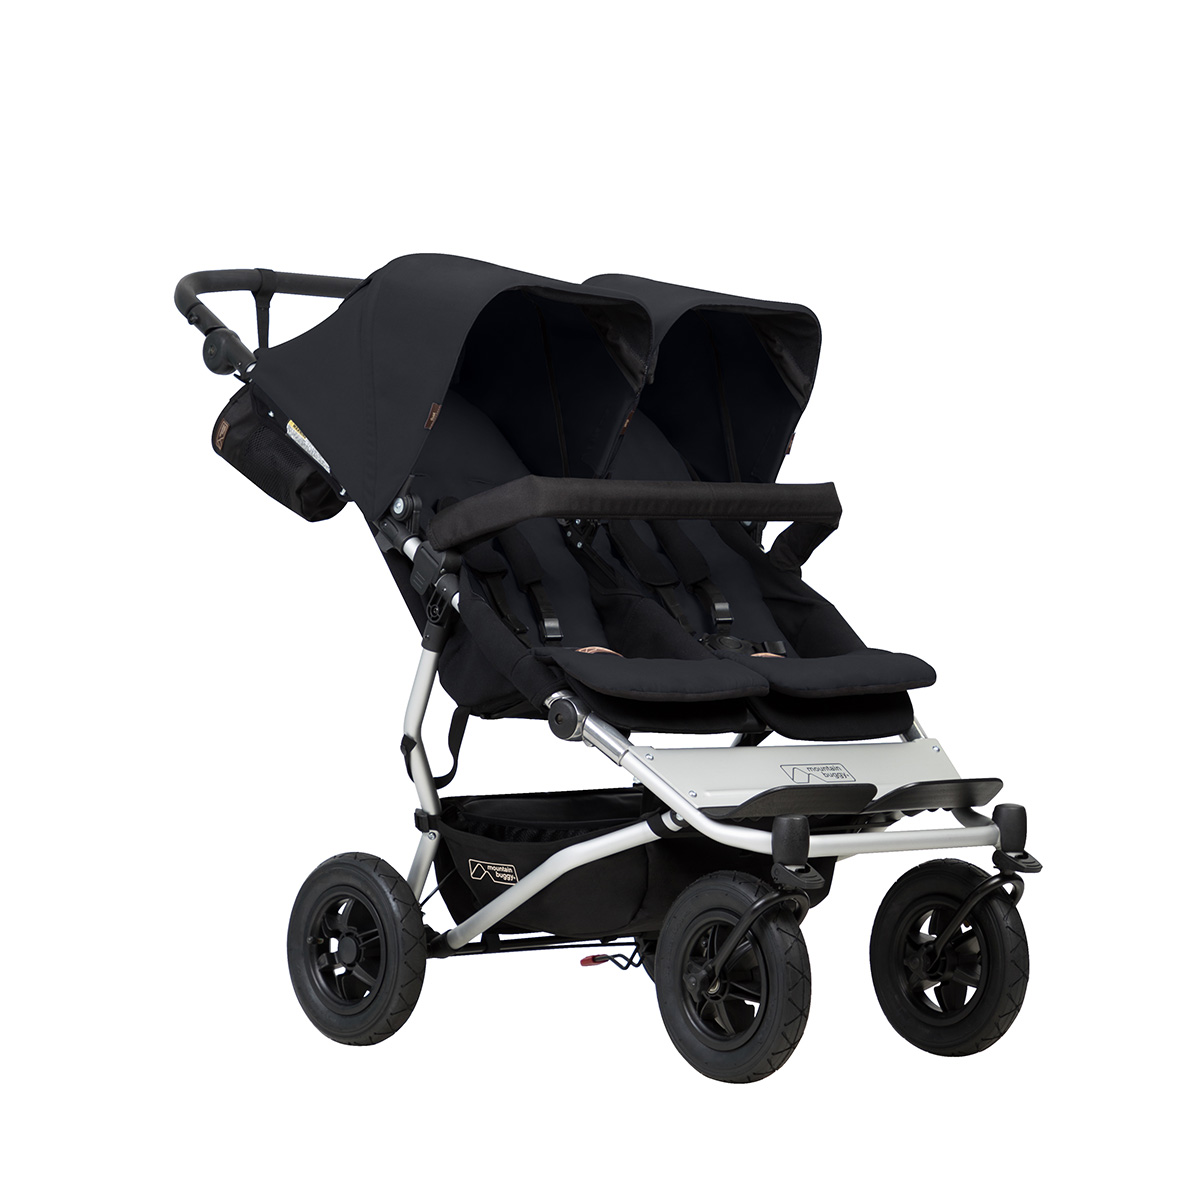 Newborn Stroller Nz Mountain Buggy Duet V3